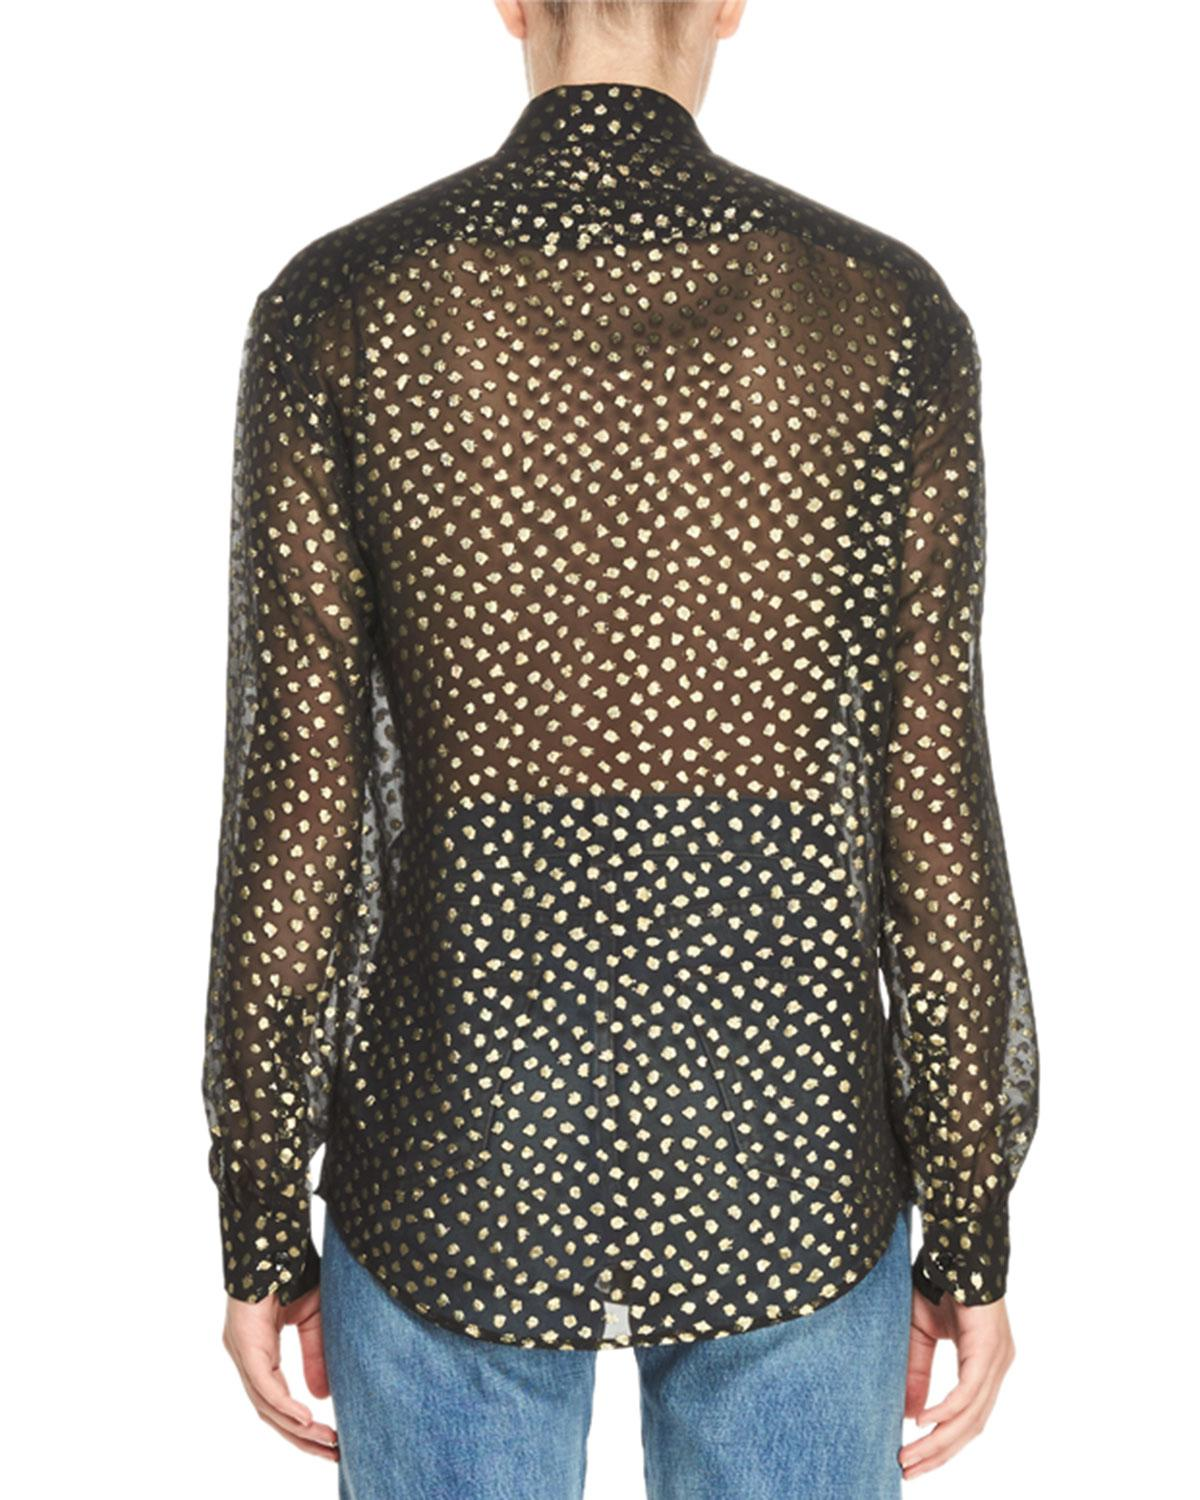 Cheap Newest Outlet 2018 Metallic Polka Dot Chiffon Blouse Saint Laurent How Much For Sale Bvjq0